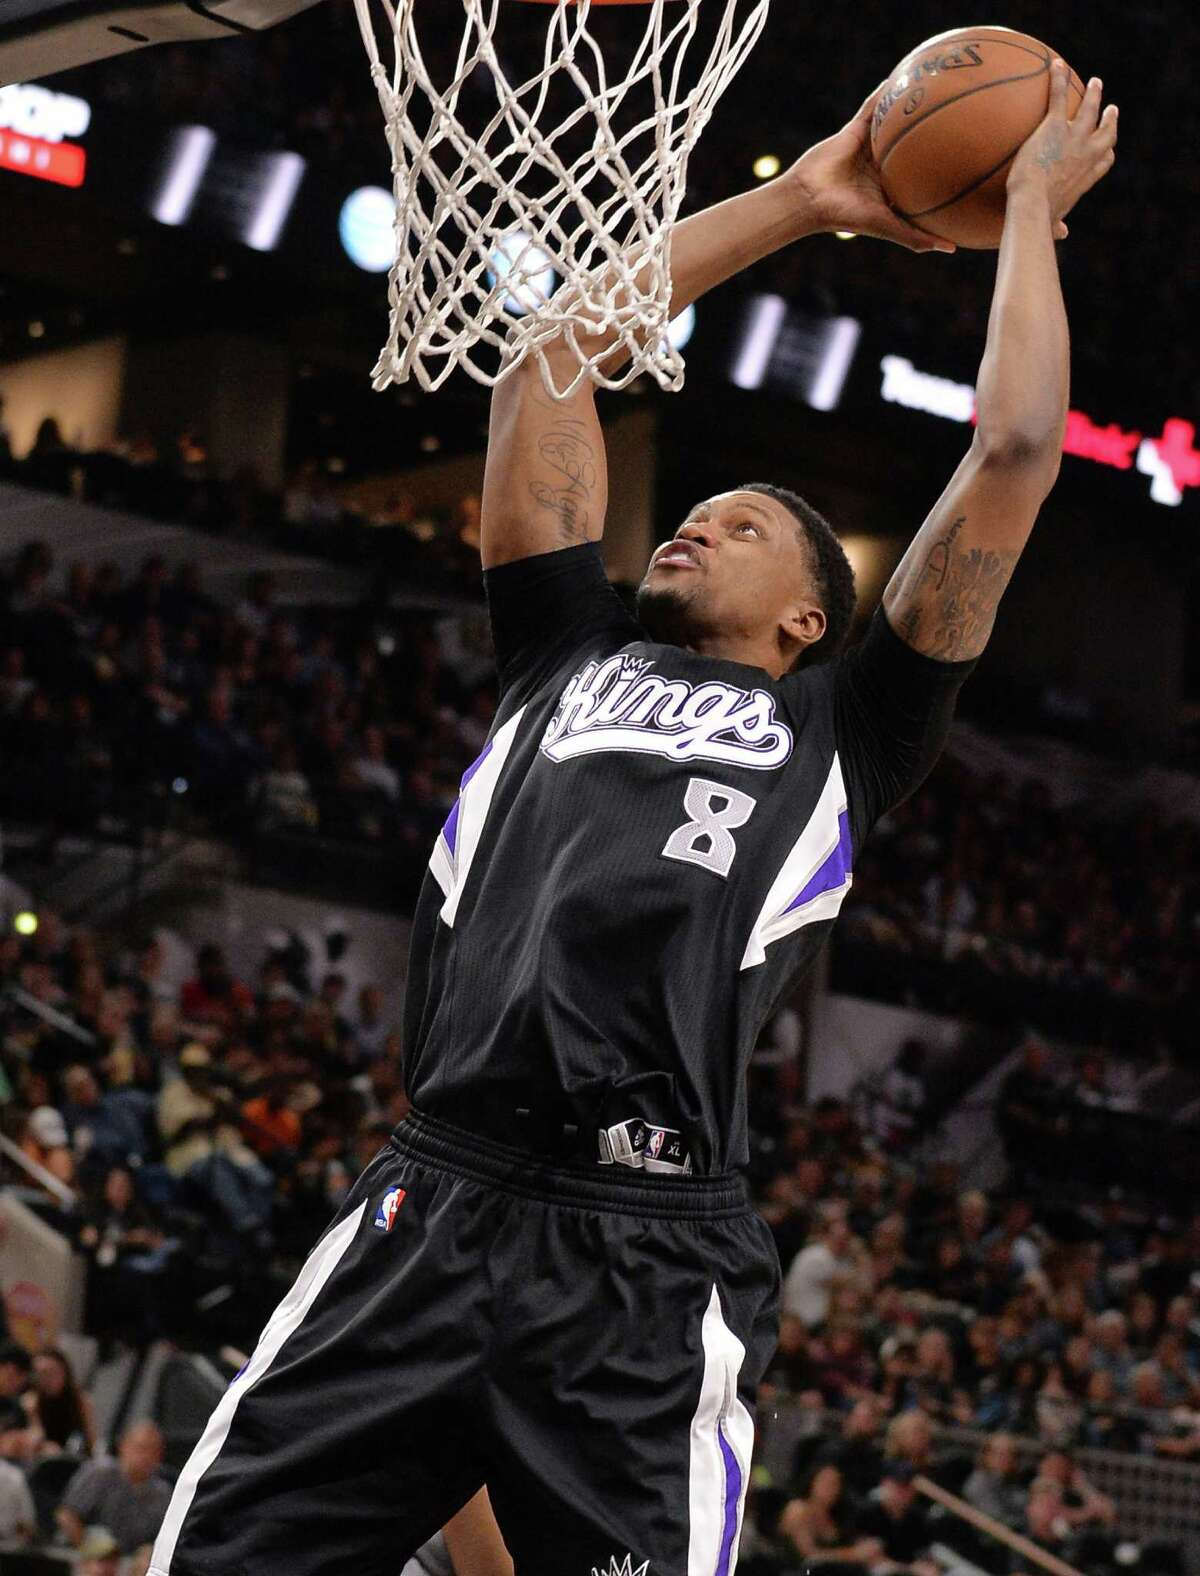 Sacramento Kings forward Rudy Gay dunks during the first half of an NBA basketball game against the San Antonio Spurs, Saturday, March 5, 2016, in San Antonio.